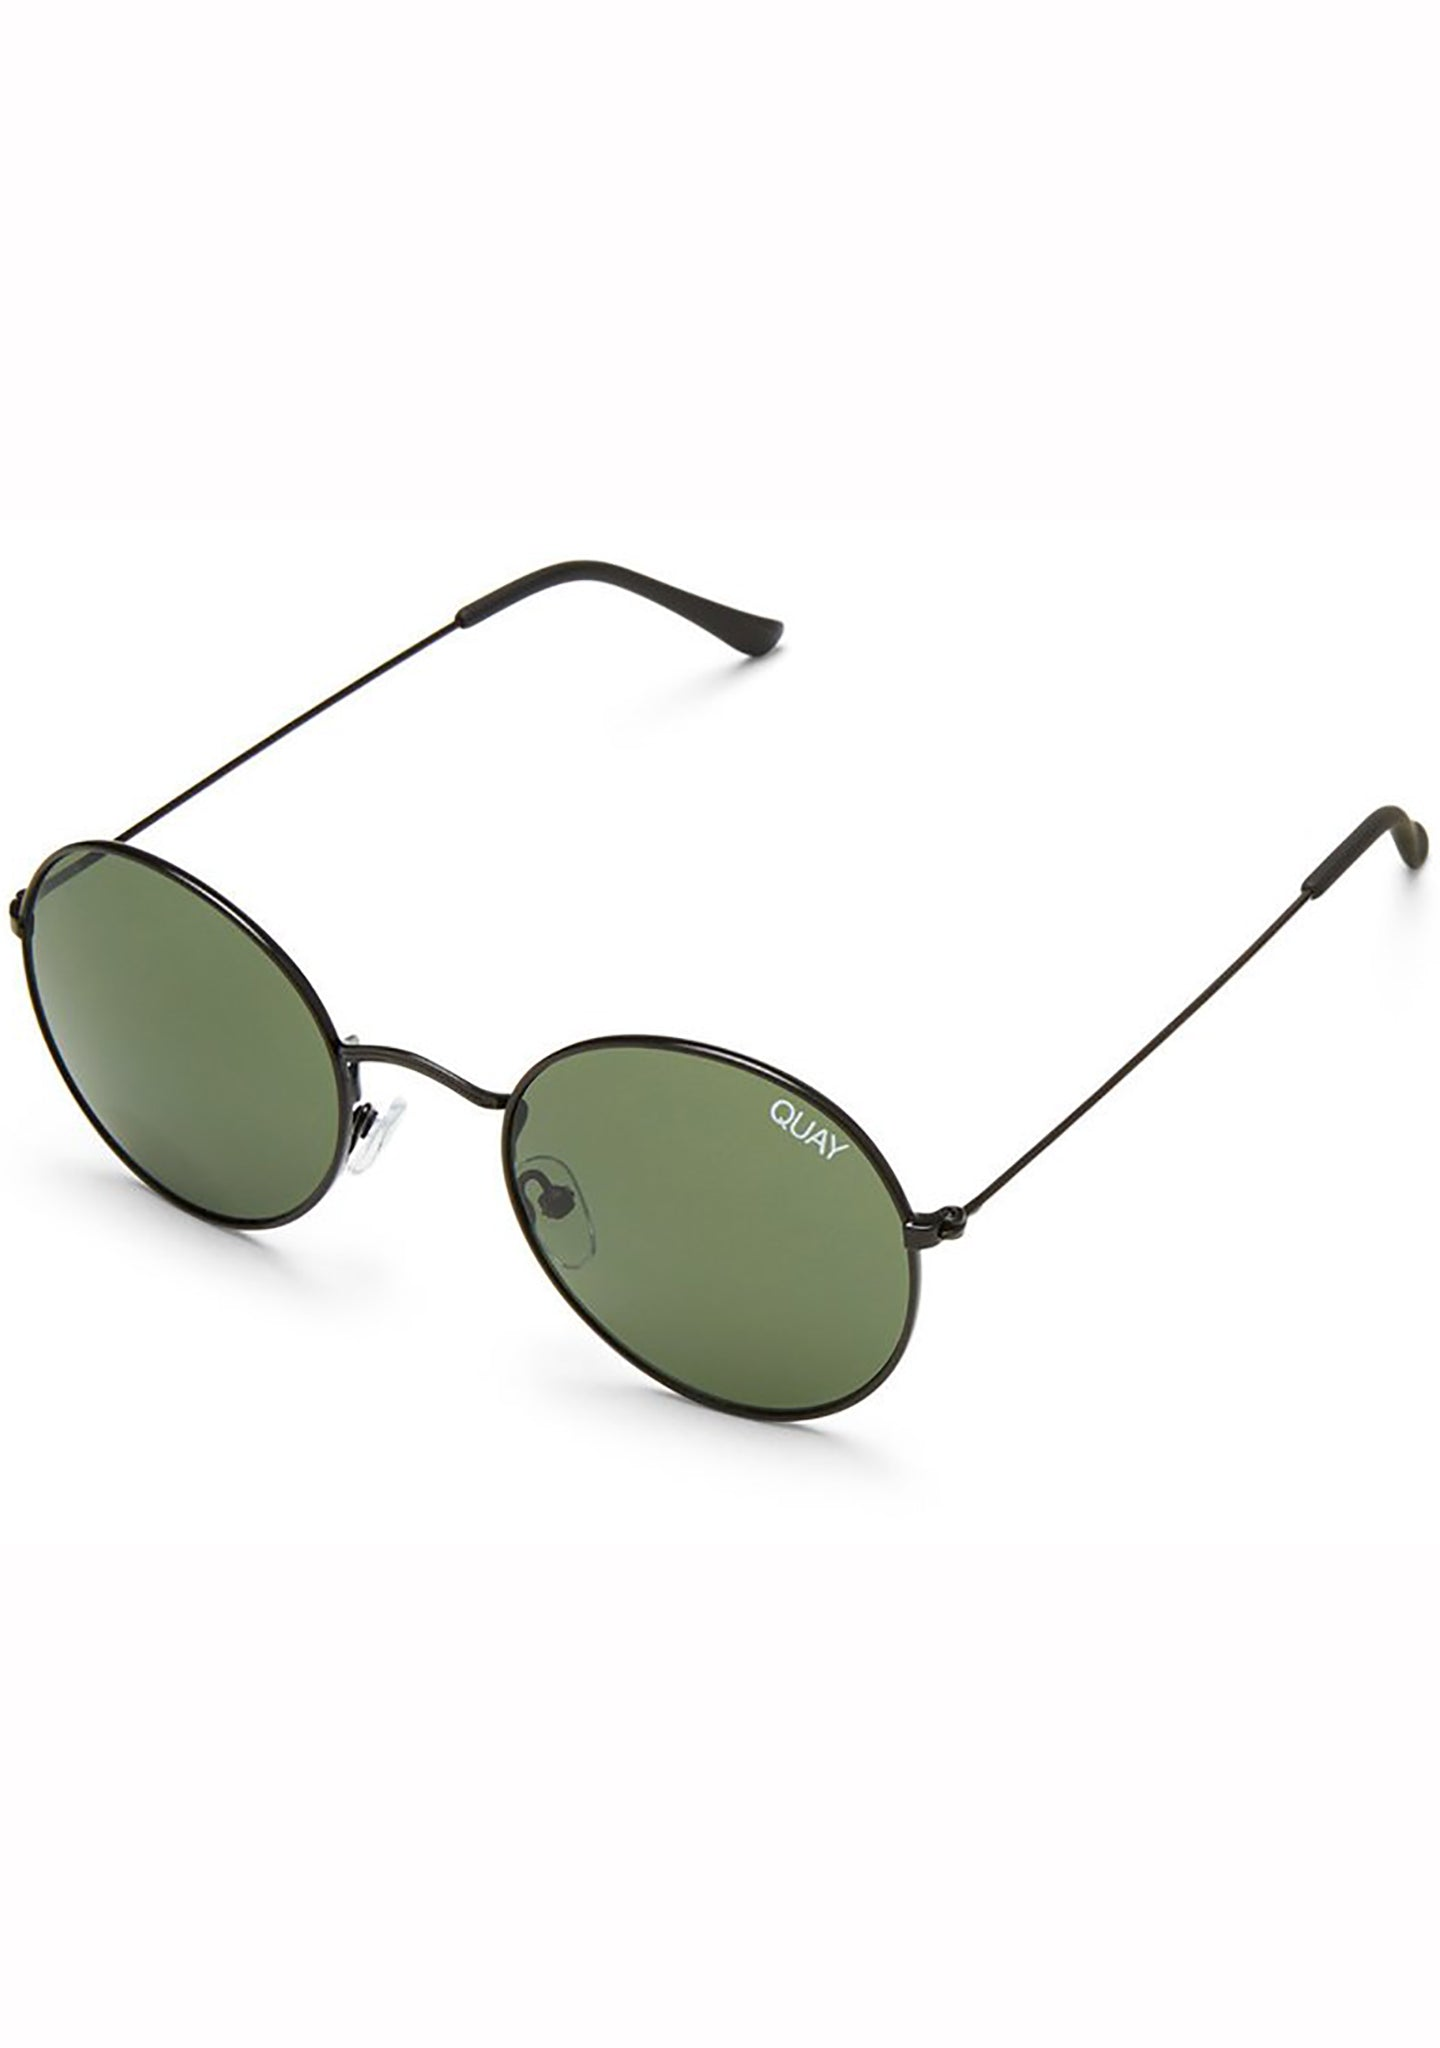 Quay Australia Mod Star Sunglasses in Black